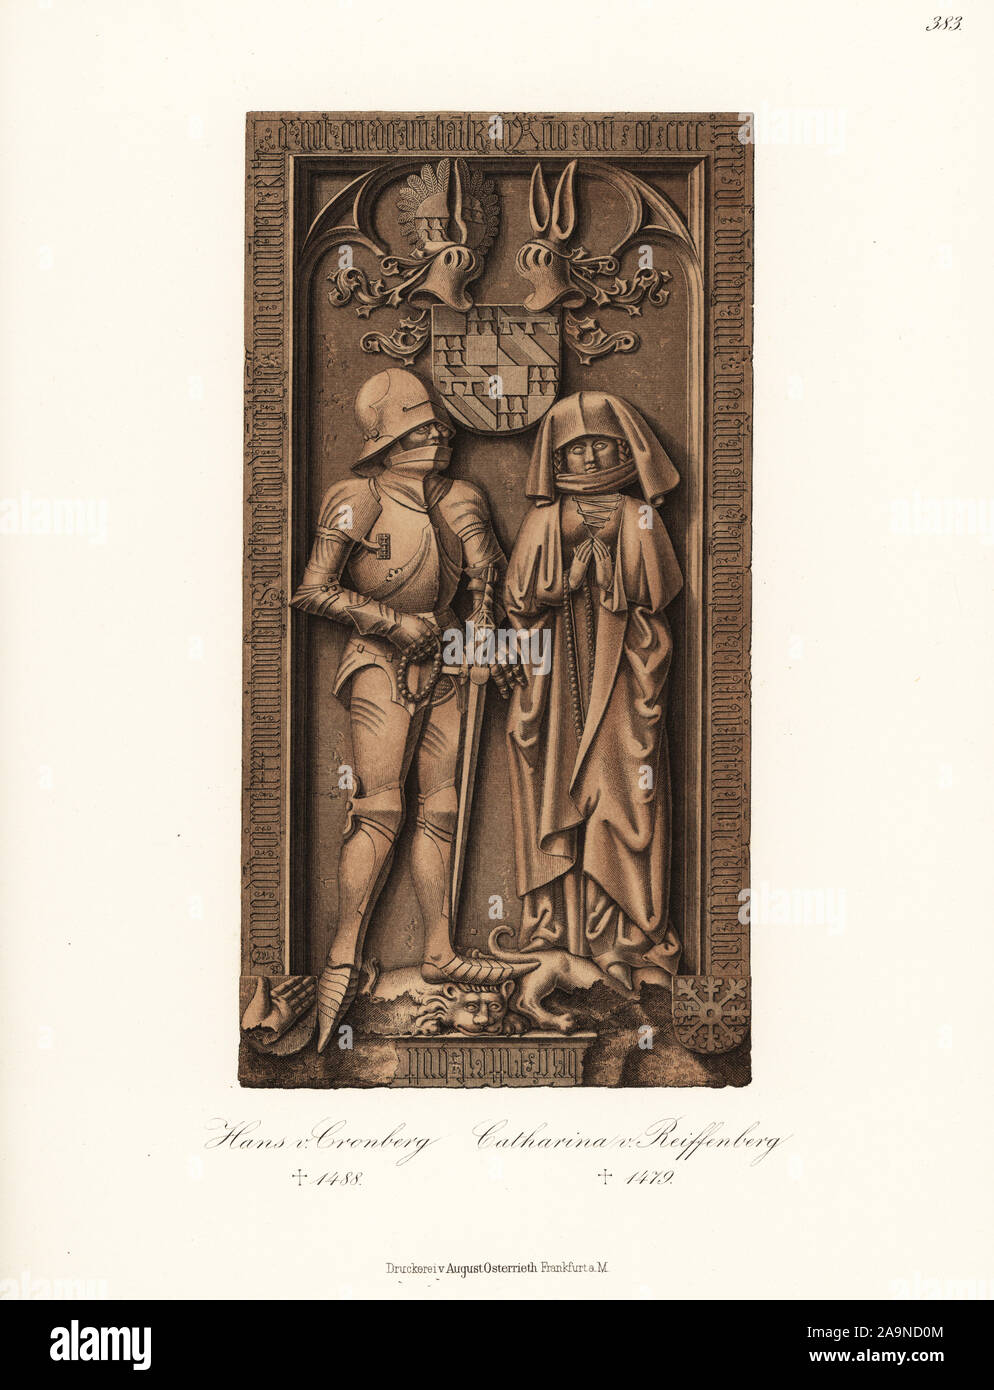 Sir Johann VI Hans von Kronberg (died 1488) and his wife Katharina von Reifenberg. From the grave effigy in St. Johann Church, Kronberg im Taunus, Hessen Germany. Chromolithograph from Hefner-Alteneck's Costumes, Artworks and Appliances from the Middle Ages to the 17th Century, Frankfurt, 1889. Dr. Hefner-Alteneck (1811 - 1903) was a German museum curator, archaeologist, art historian, illustrator and etcher. Stock Photo